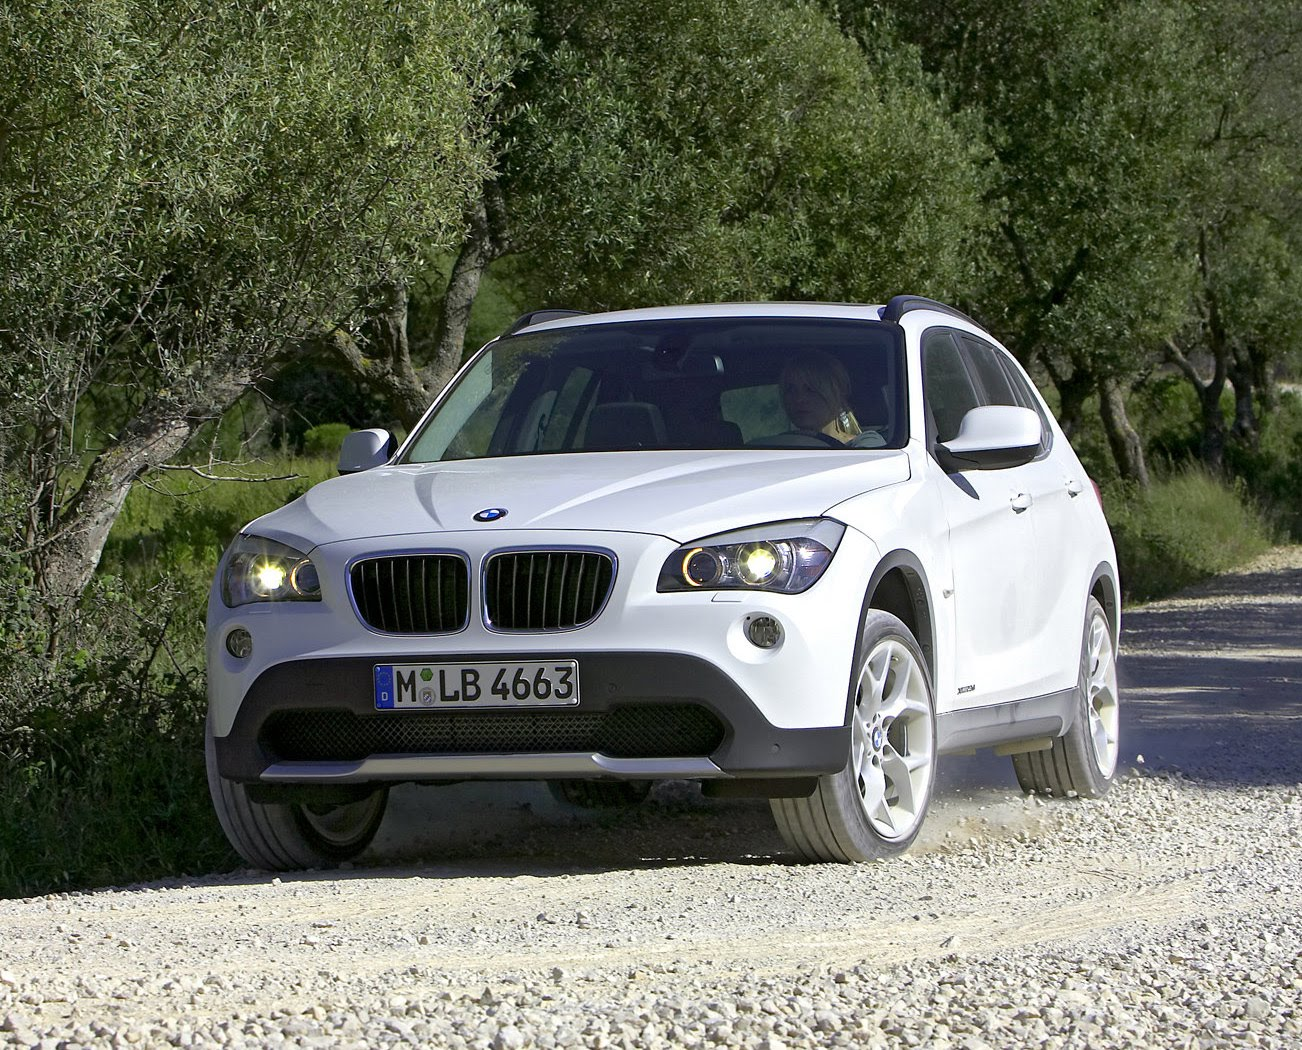 autozone new bmw x1 to be launched in january 2011 technical specifications features price. Black Bedroom Furniture Sets. Home Design Ideas